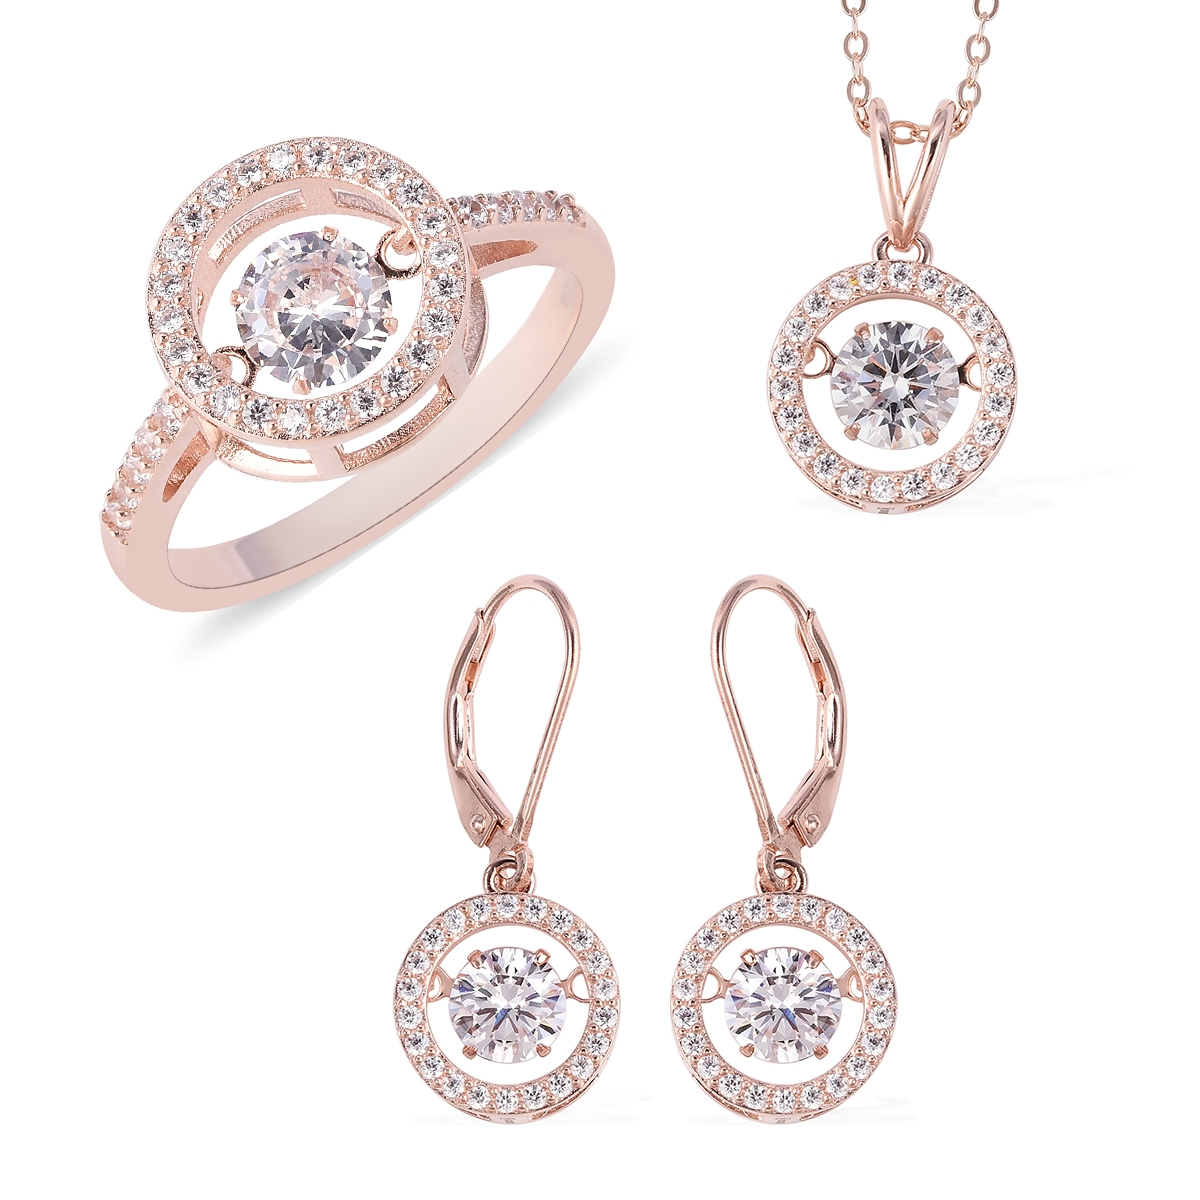 Lustro Stella Dancing Cz Halo Set Earrings, Ring (Size 10) And Pendant  Necklace (18 In) In Vermeil Rg Over Sterling Silver (Avg. 14 G)  (View 16 of 25)